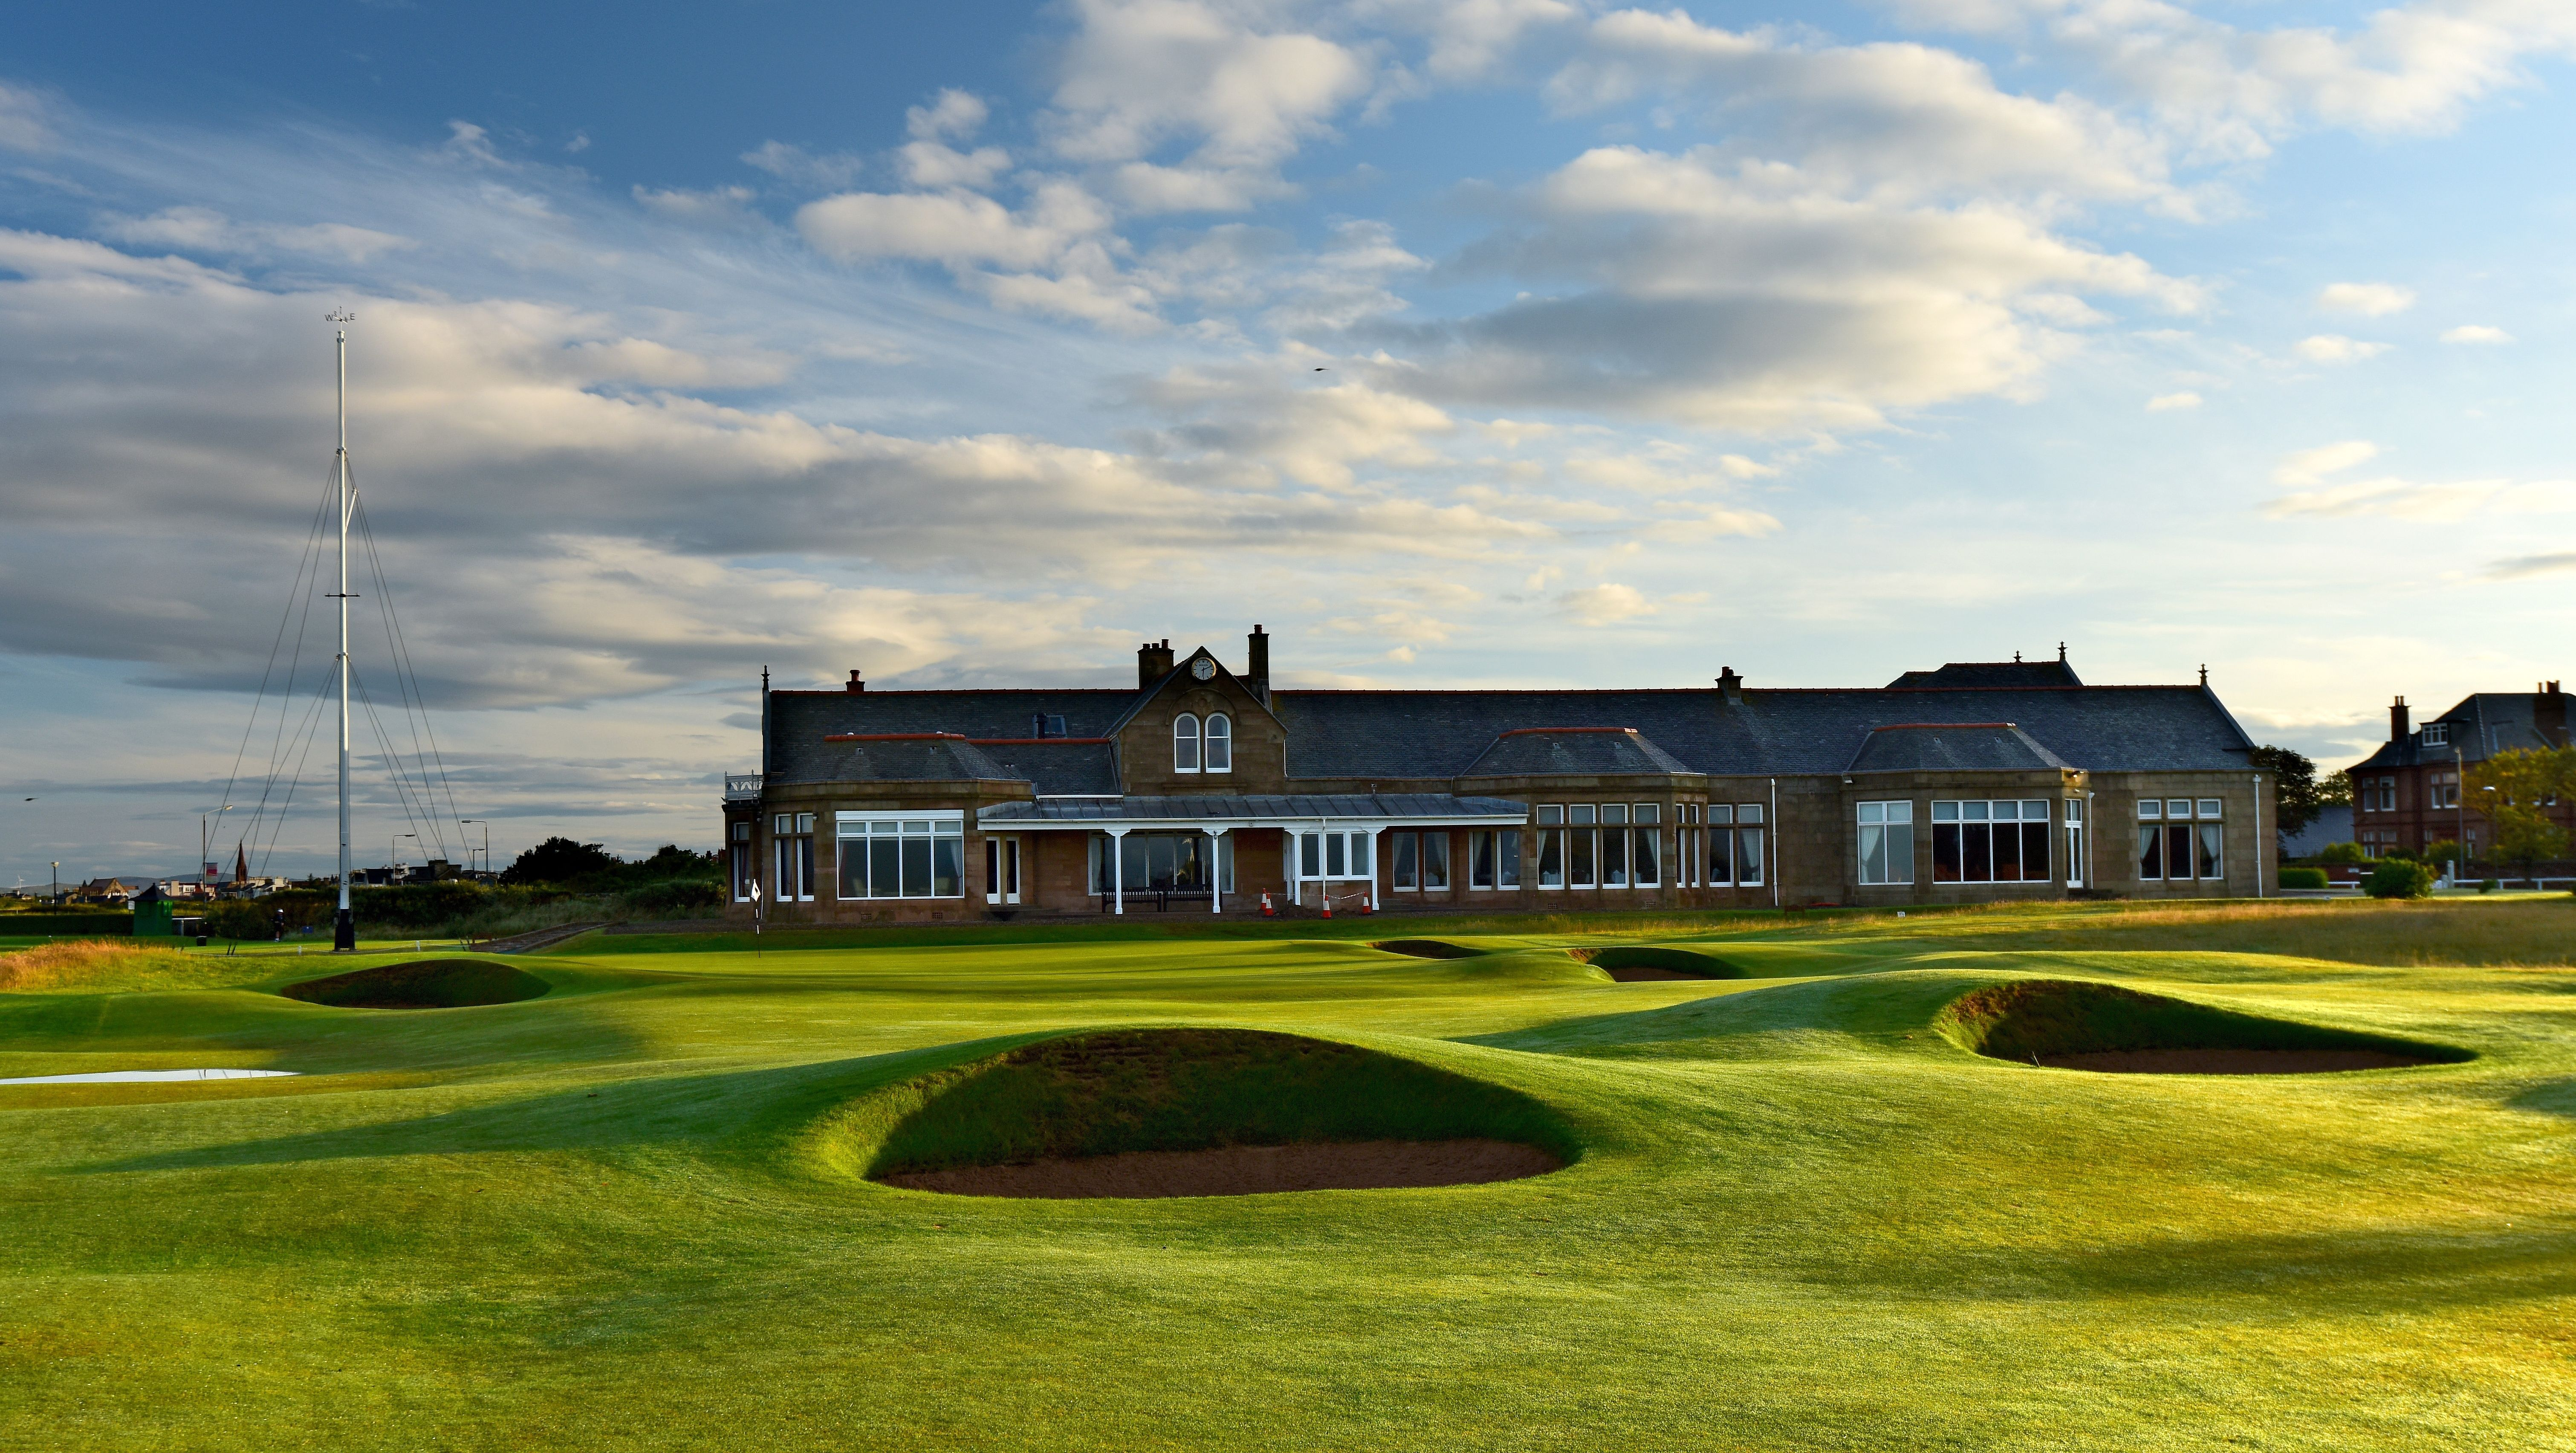 The 457 yards par 4, 18th hole on the Old Course at Royal Troon